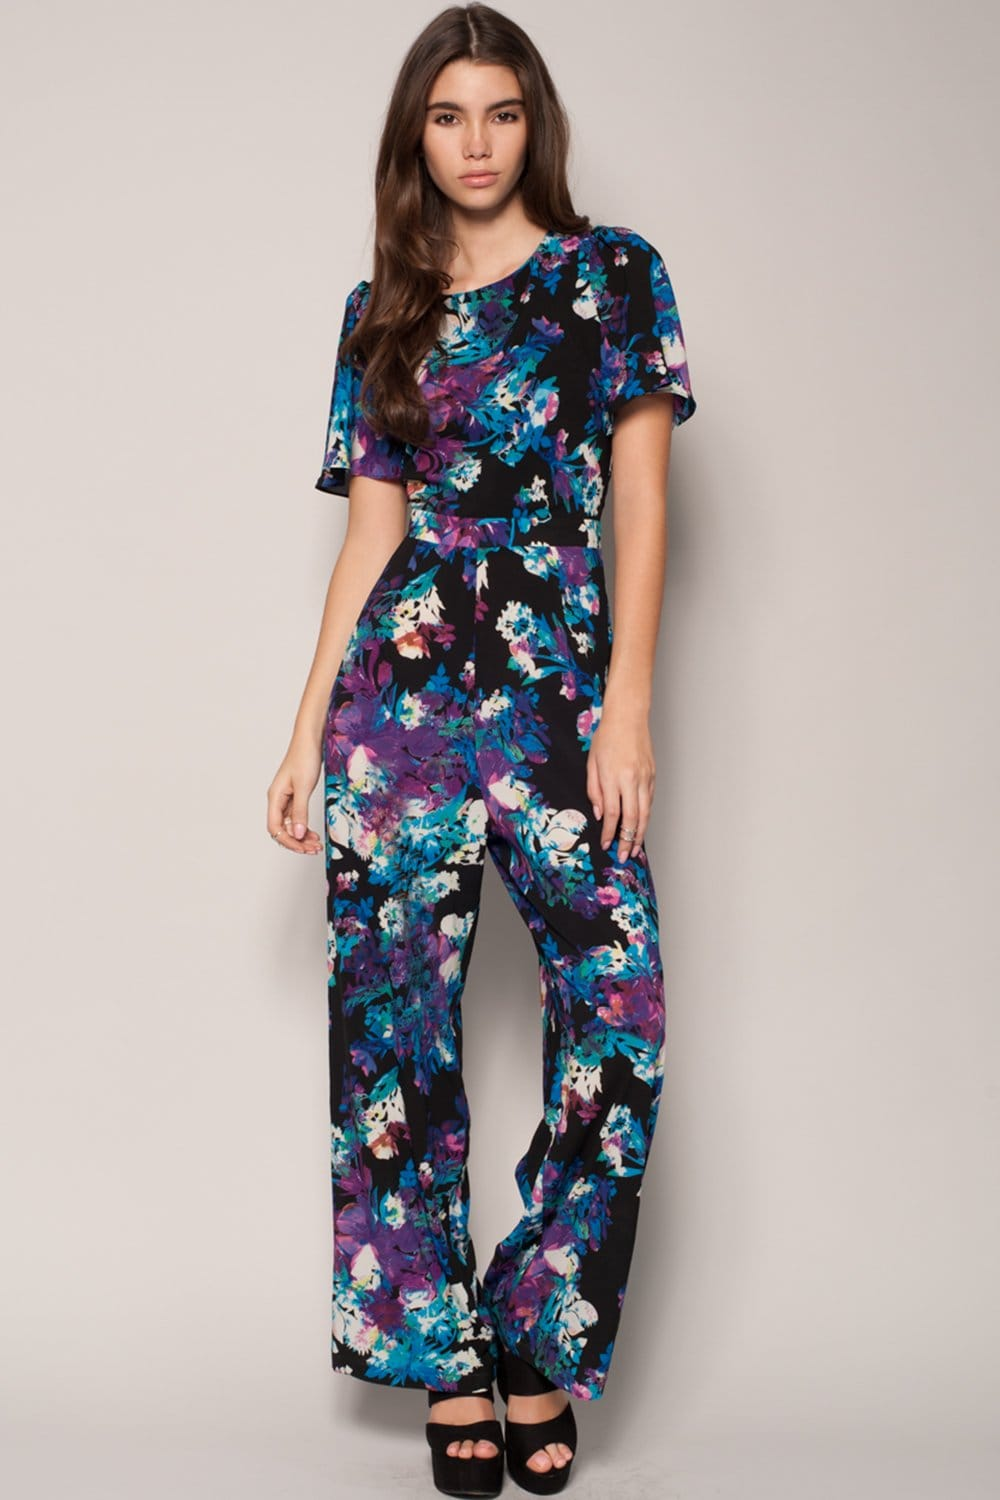 Outlet Girls On Film Blue Floral Cut Out Jumpsuit - Outlet Girls On Film From Little Mistress UK